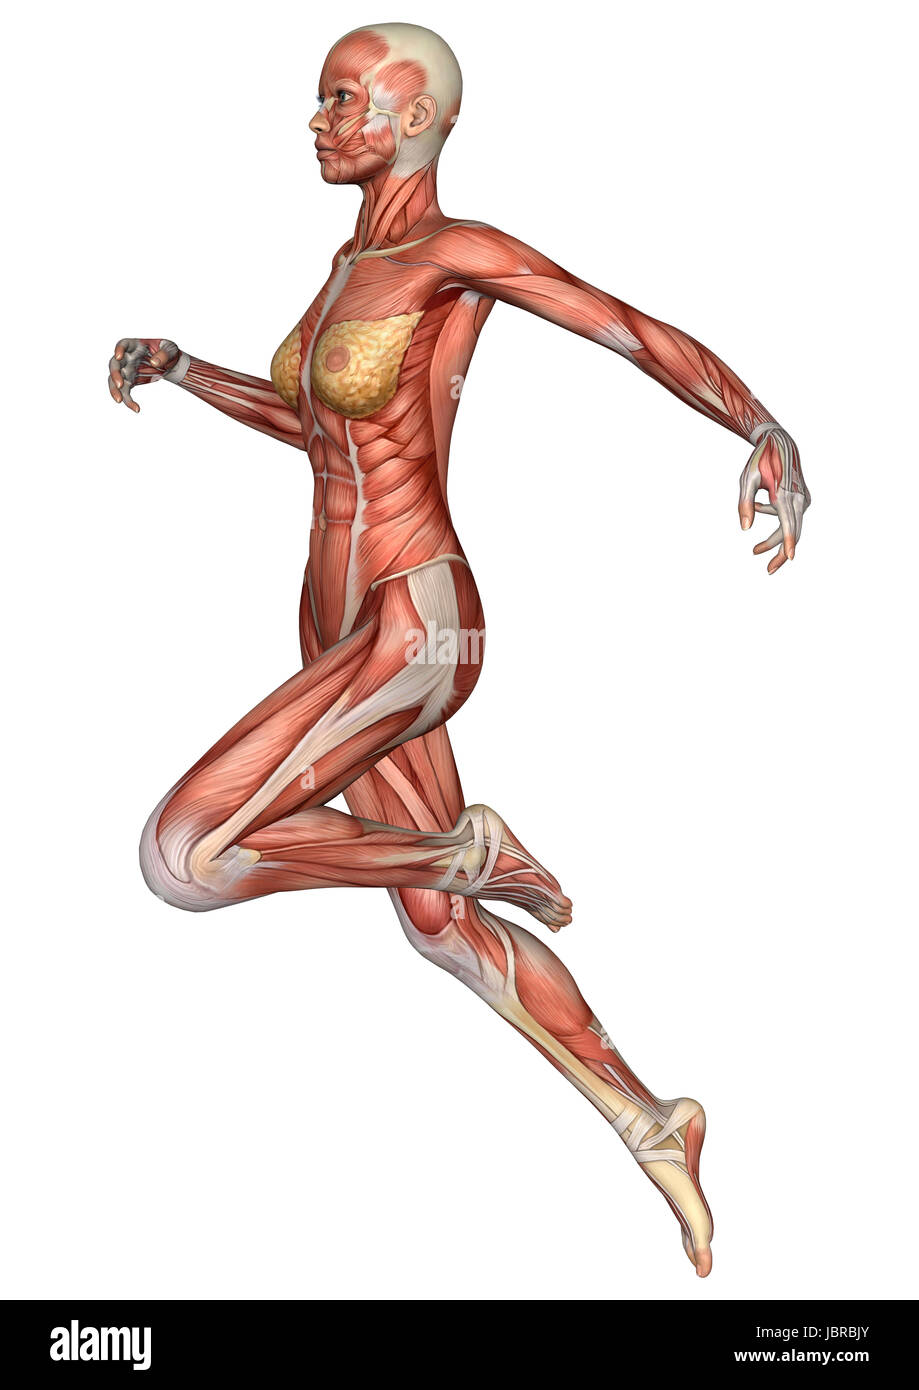 3D digital render of a running female anatomy figure with muscles ...